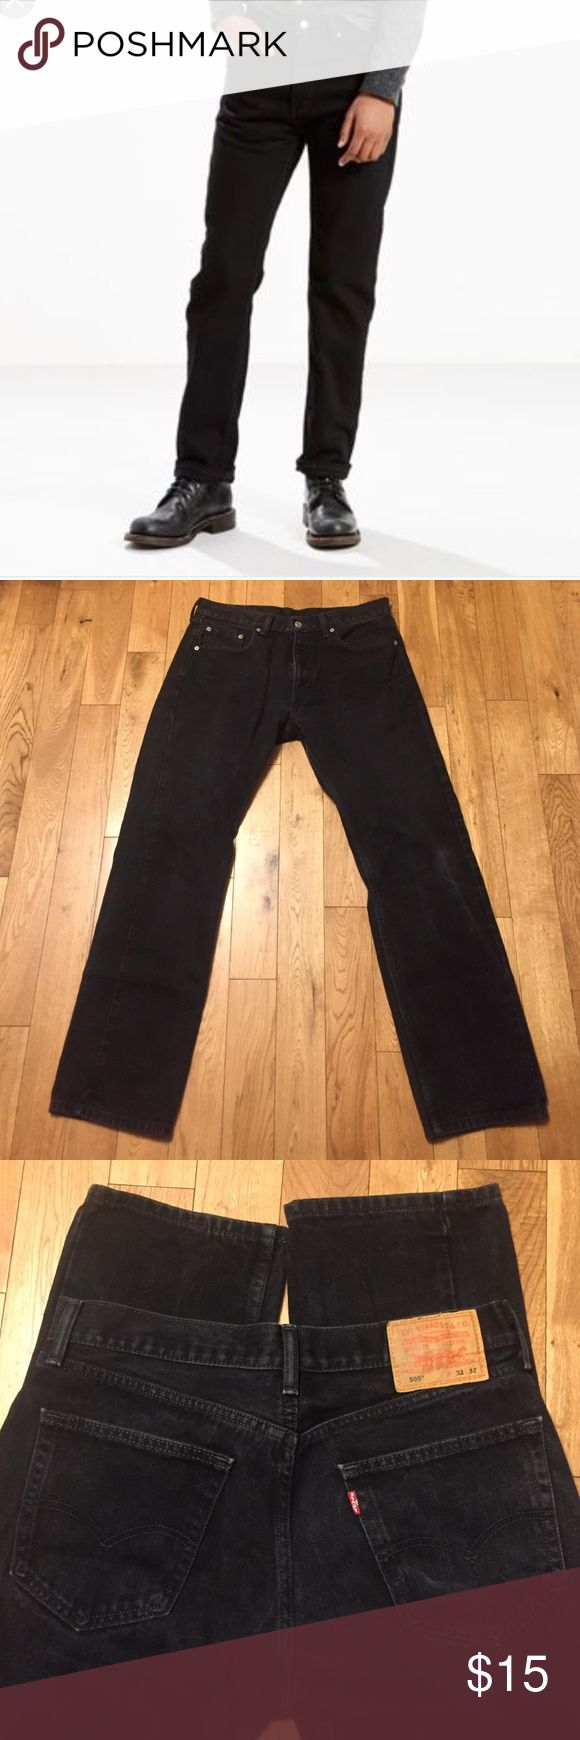 Levi 505 jeans Worn but in great shape. No tears or stains. Size 32 x 32 Levi's Jeans Straight